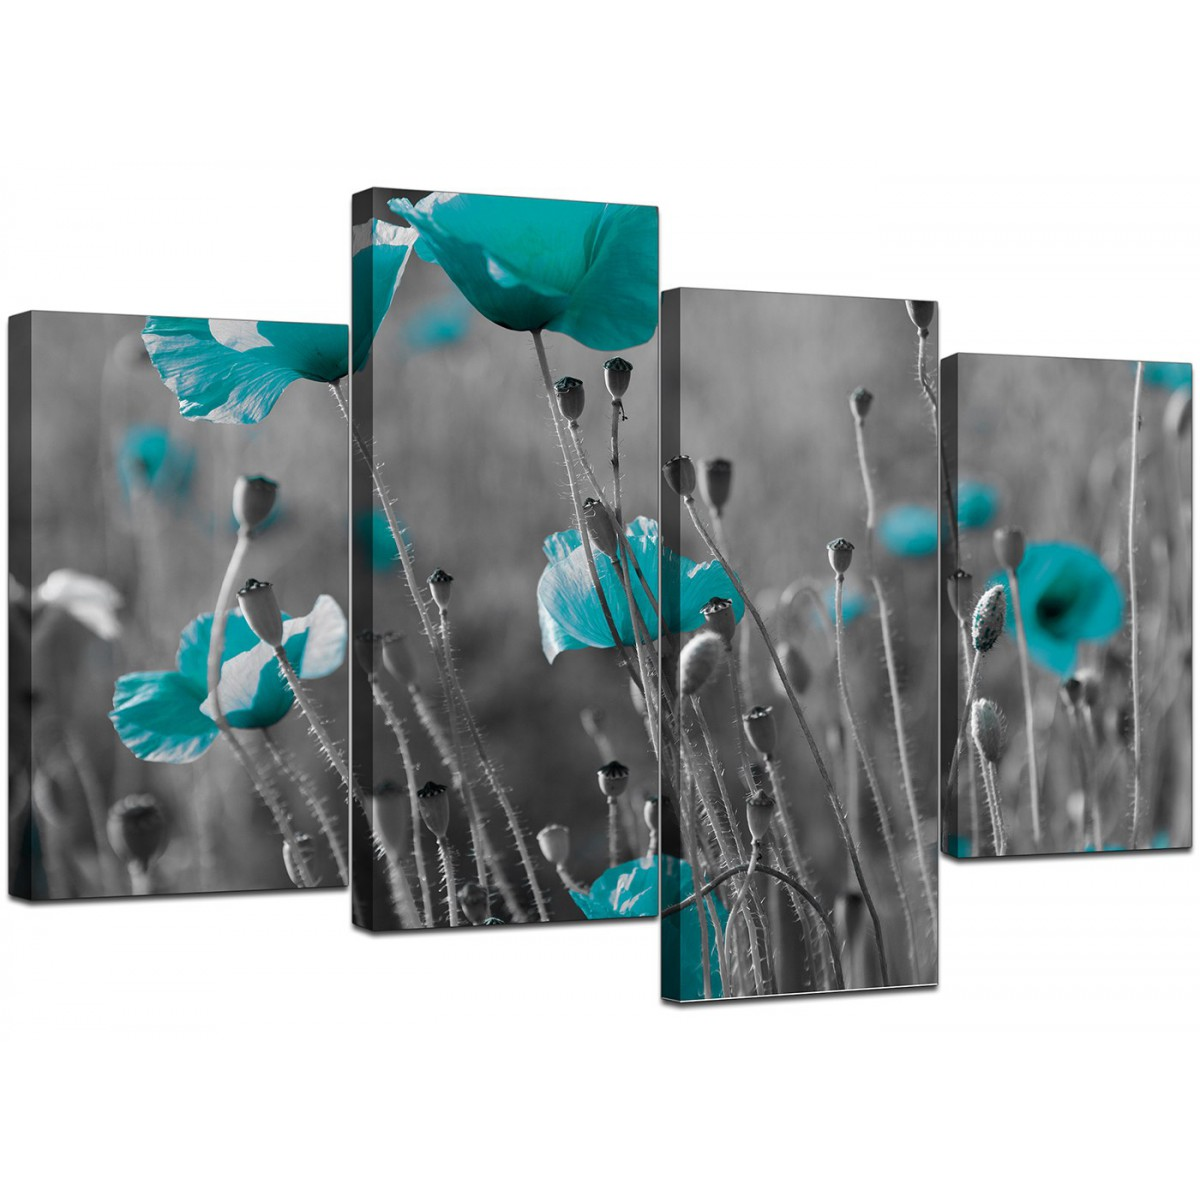 Canvas Art Of Teal Poppies In Black Amp White For Your Office